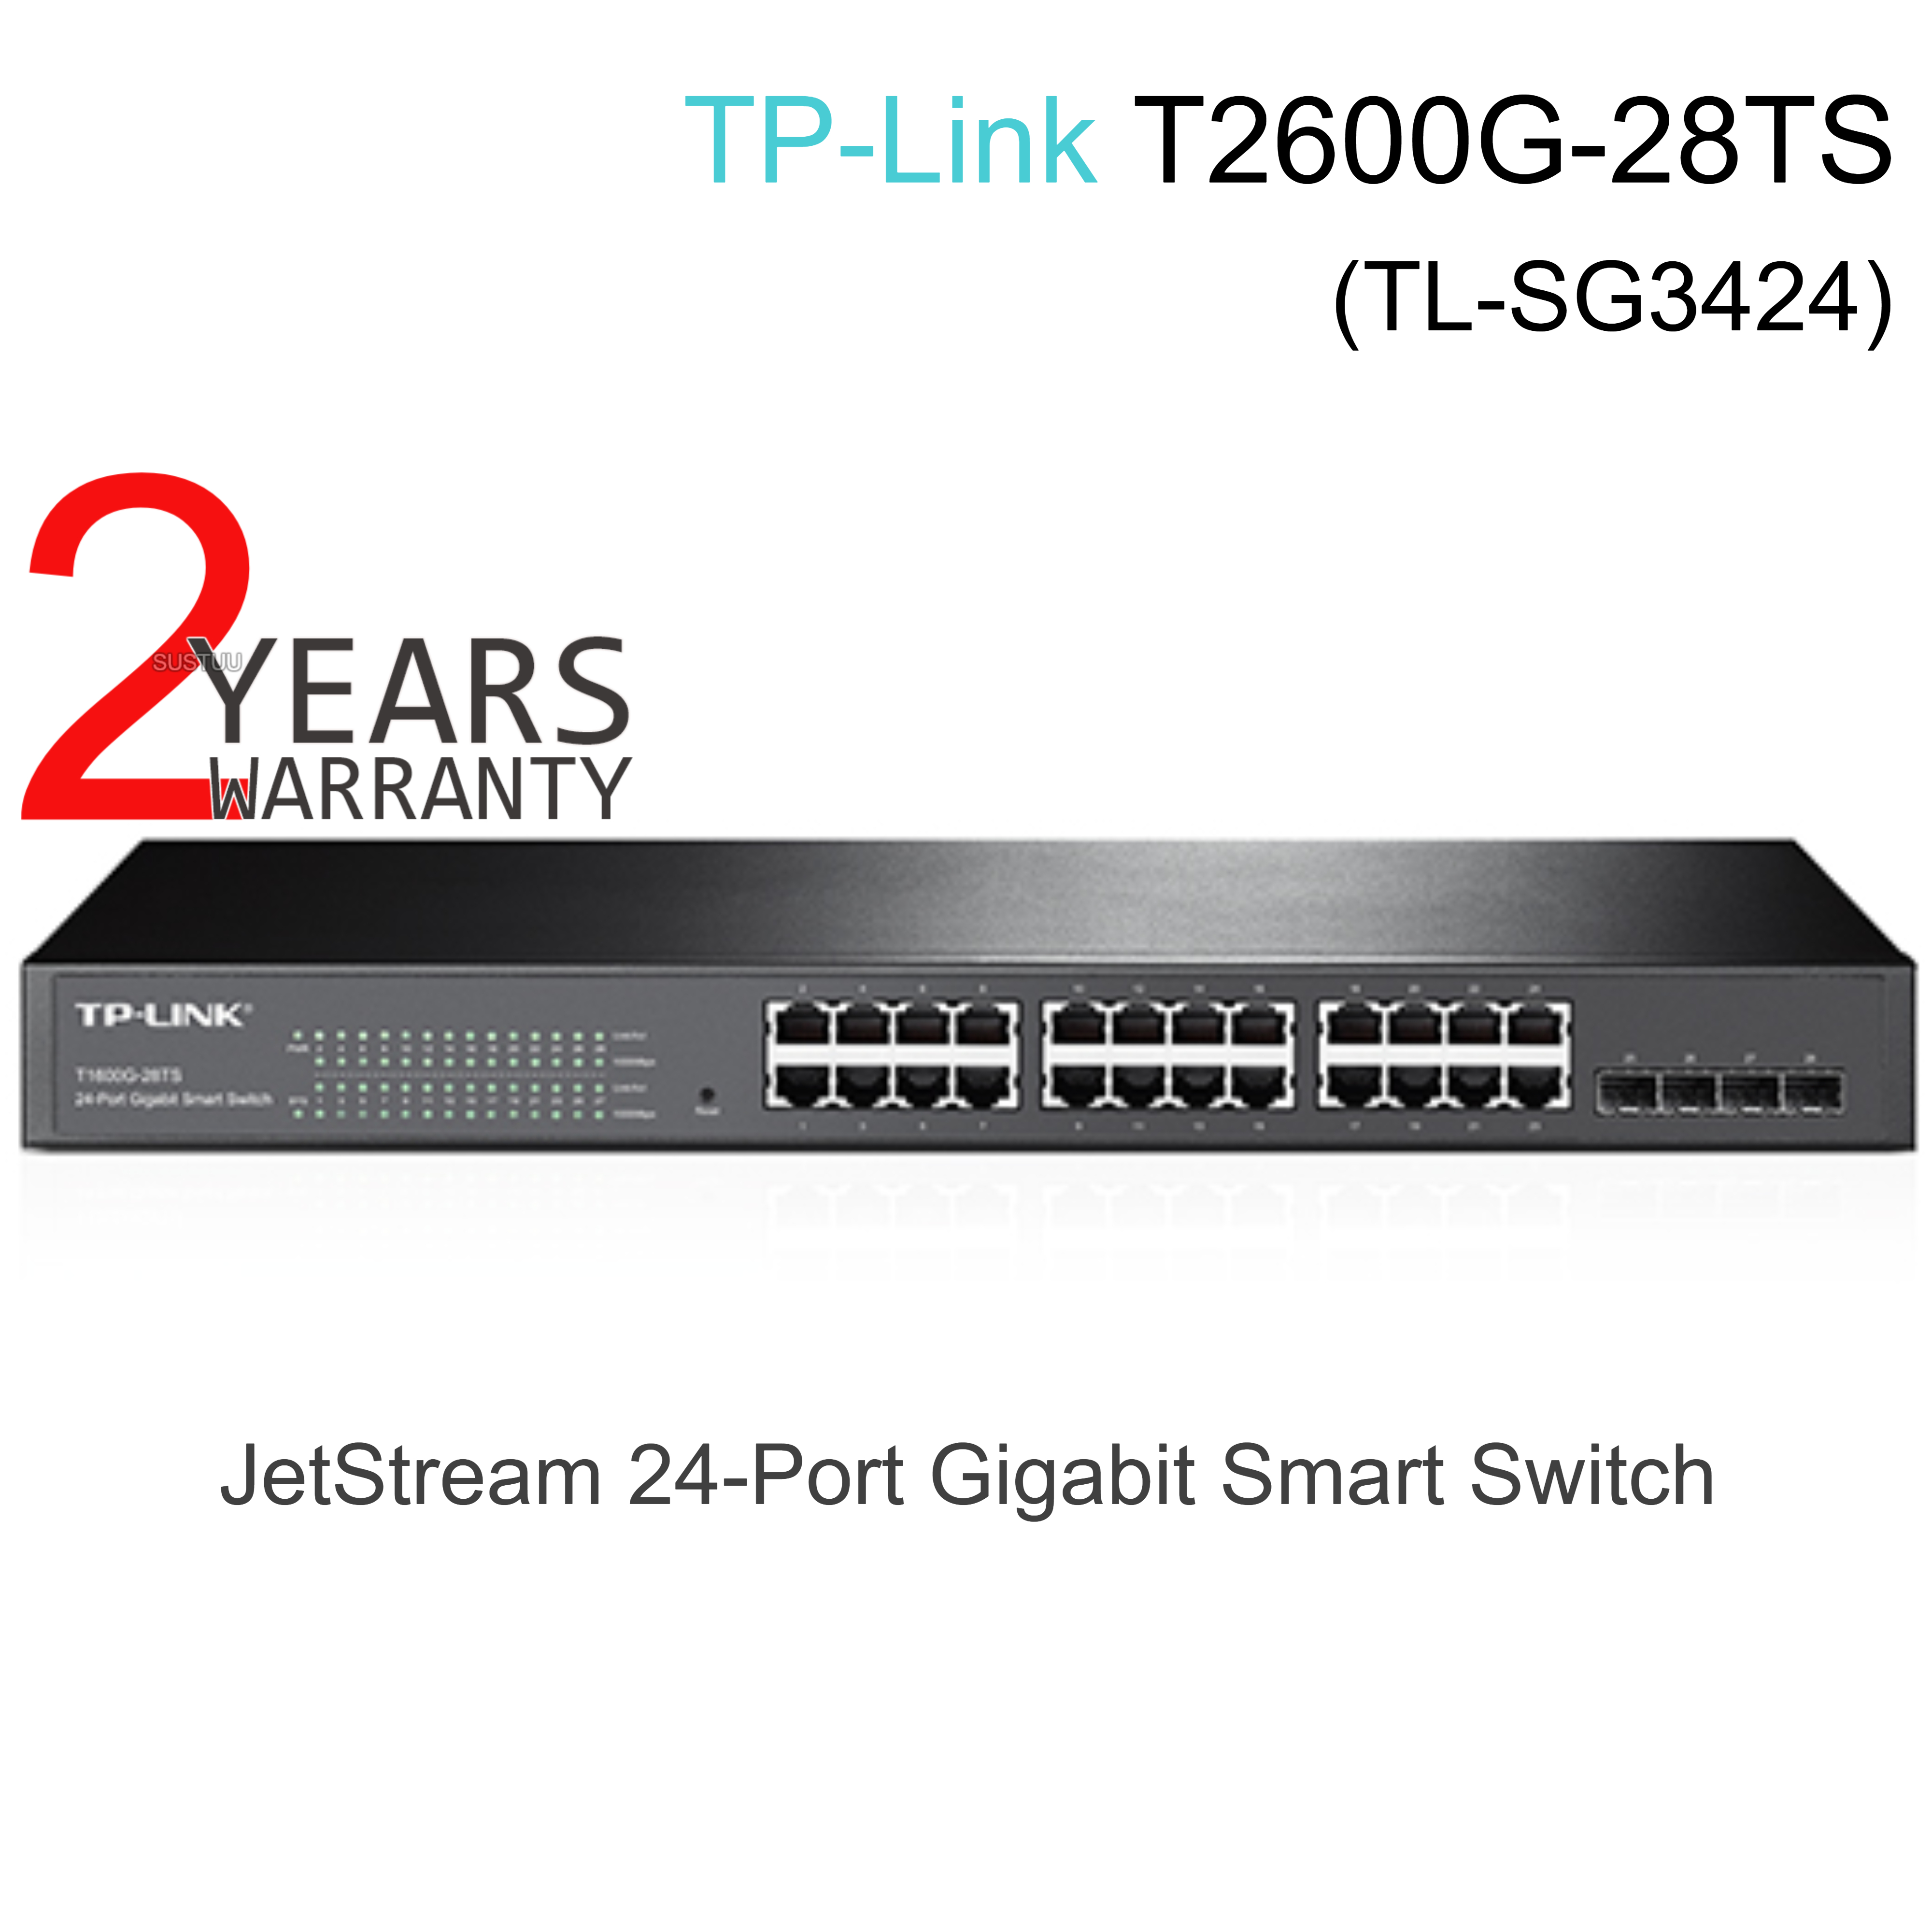 TP-Link T2600G-28TS|JetStream 24-Port Gigabit L2 Managed Switch + 4 SFP Slots